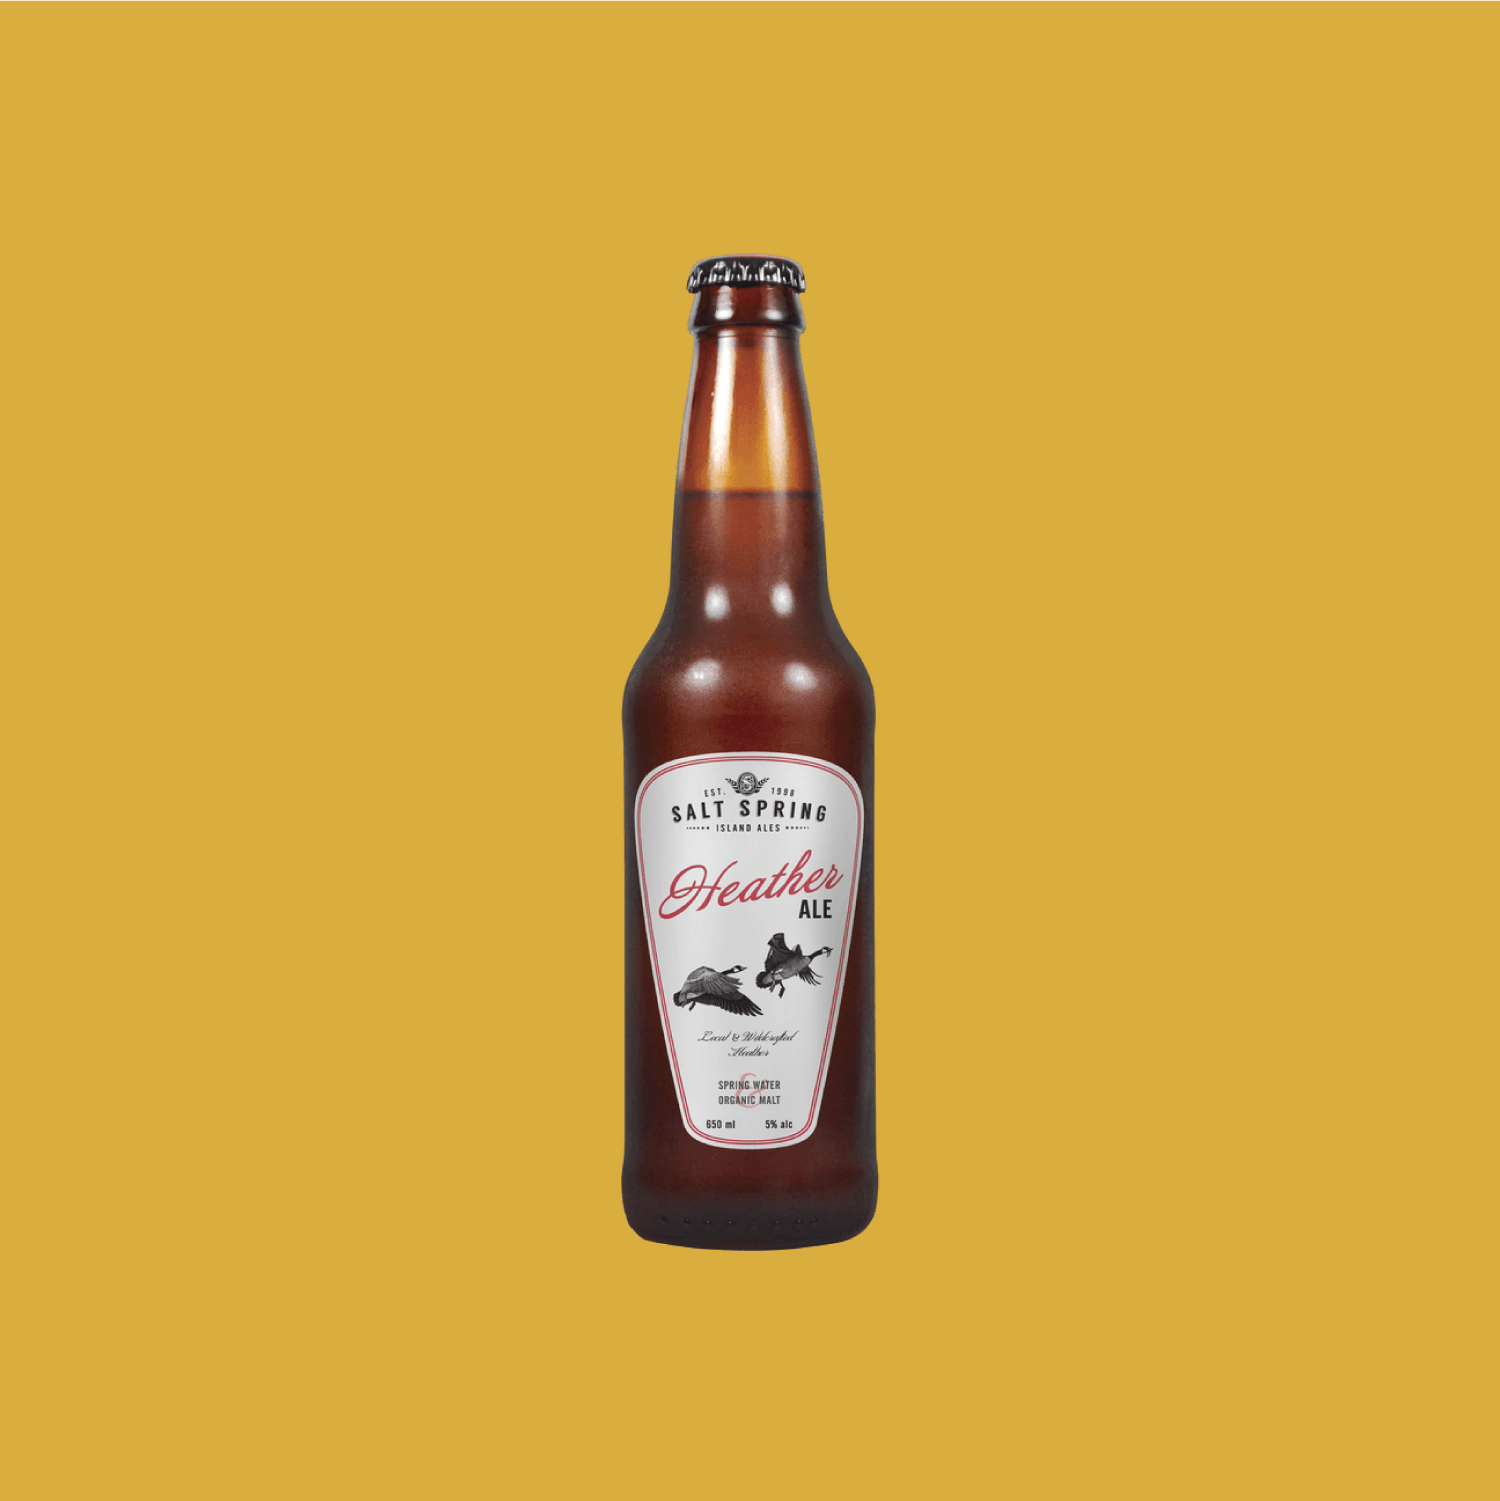 Salt Spring Island Heather Ale - A crisp and lightly hopped ale with floral and honeynotes. Totally crushable for when you're lounging poolside.$6.79, 650 ml